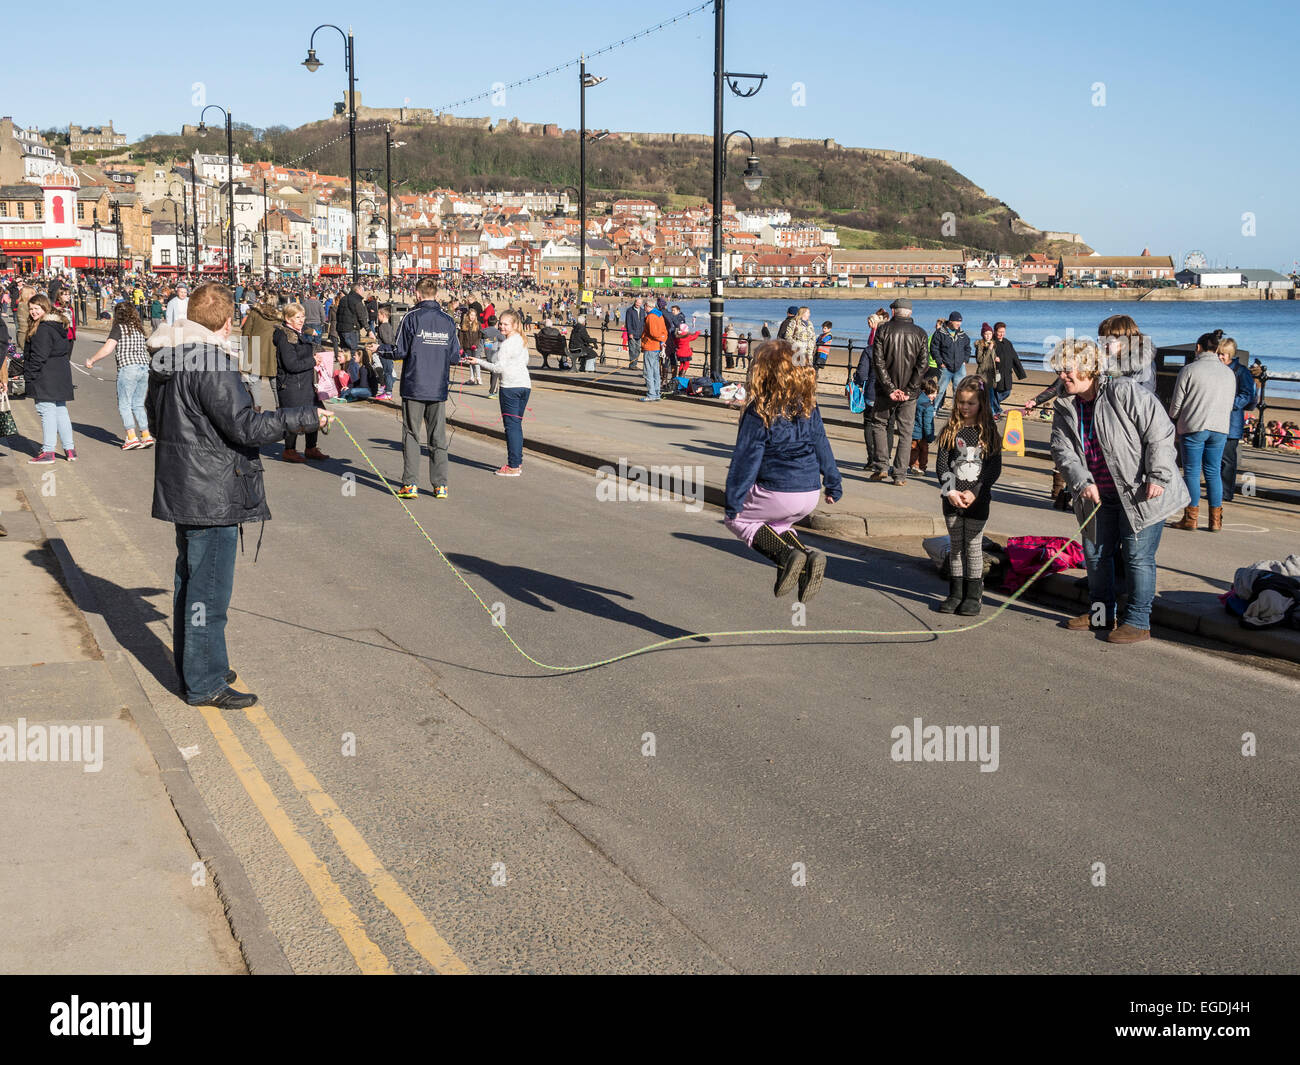 Traditional Shrove Tuesday skipping custom on the foreshore Scarborough Yorkshire UK - Stock Image